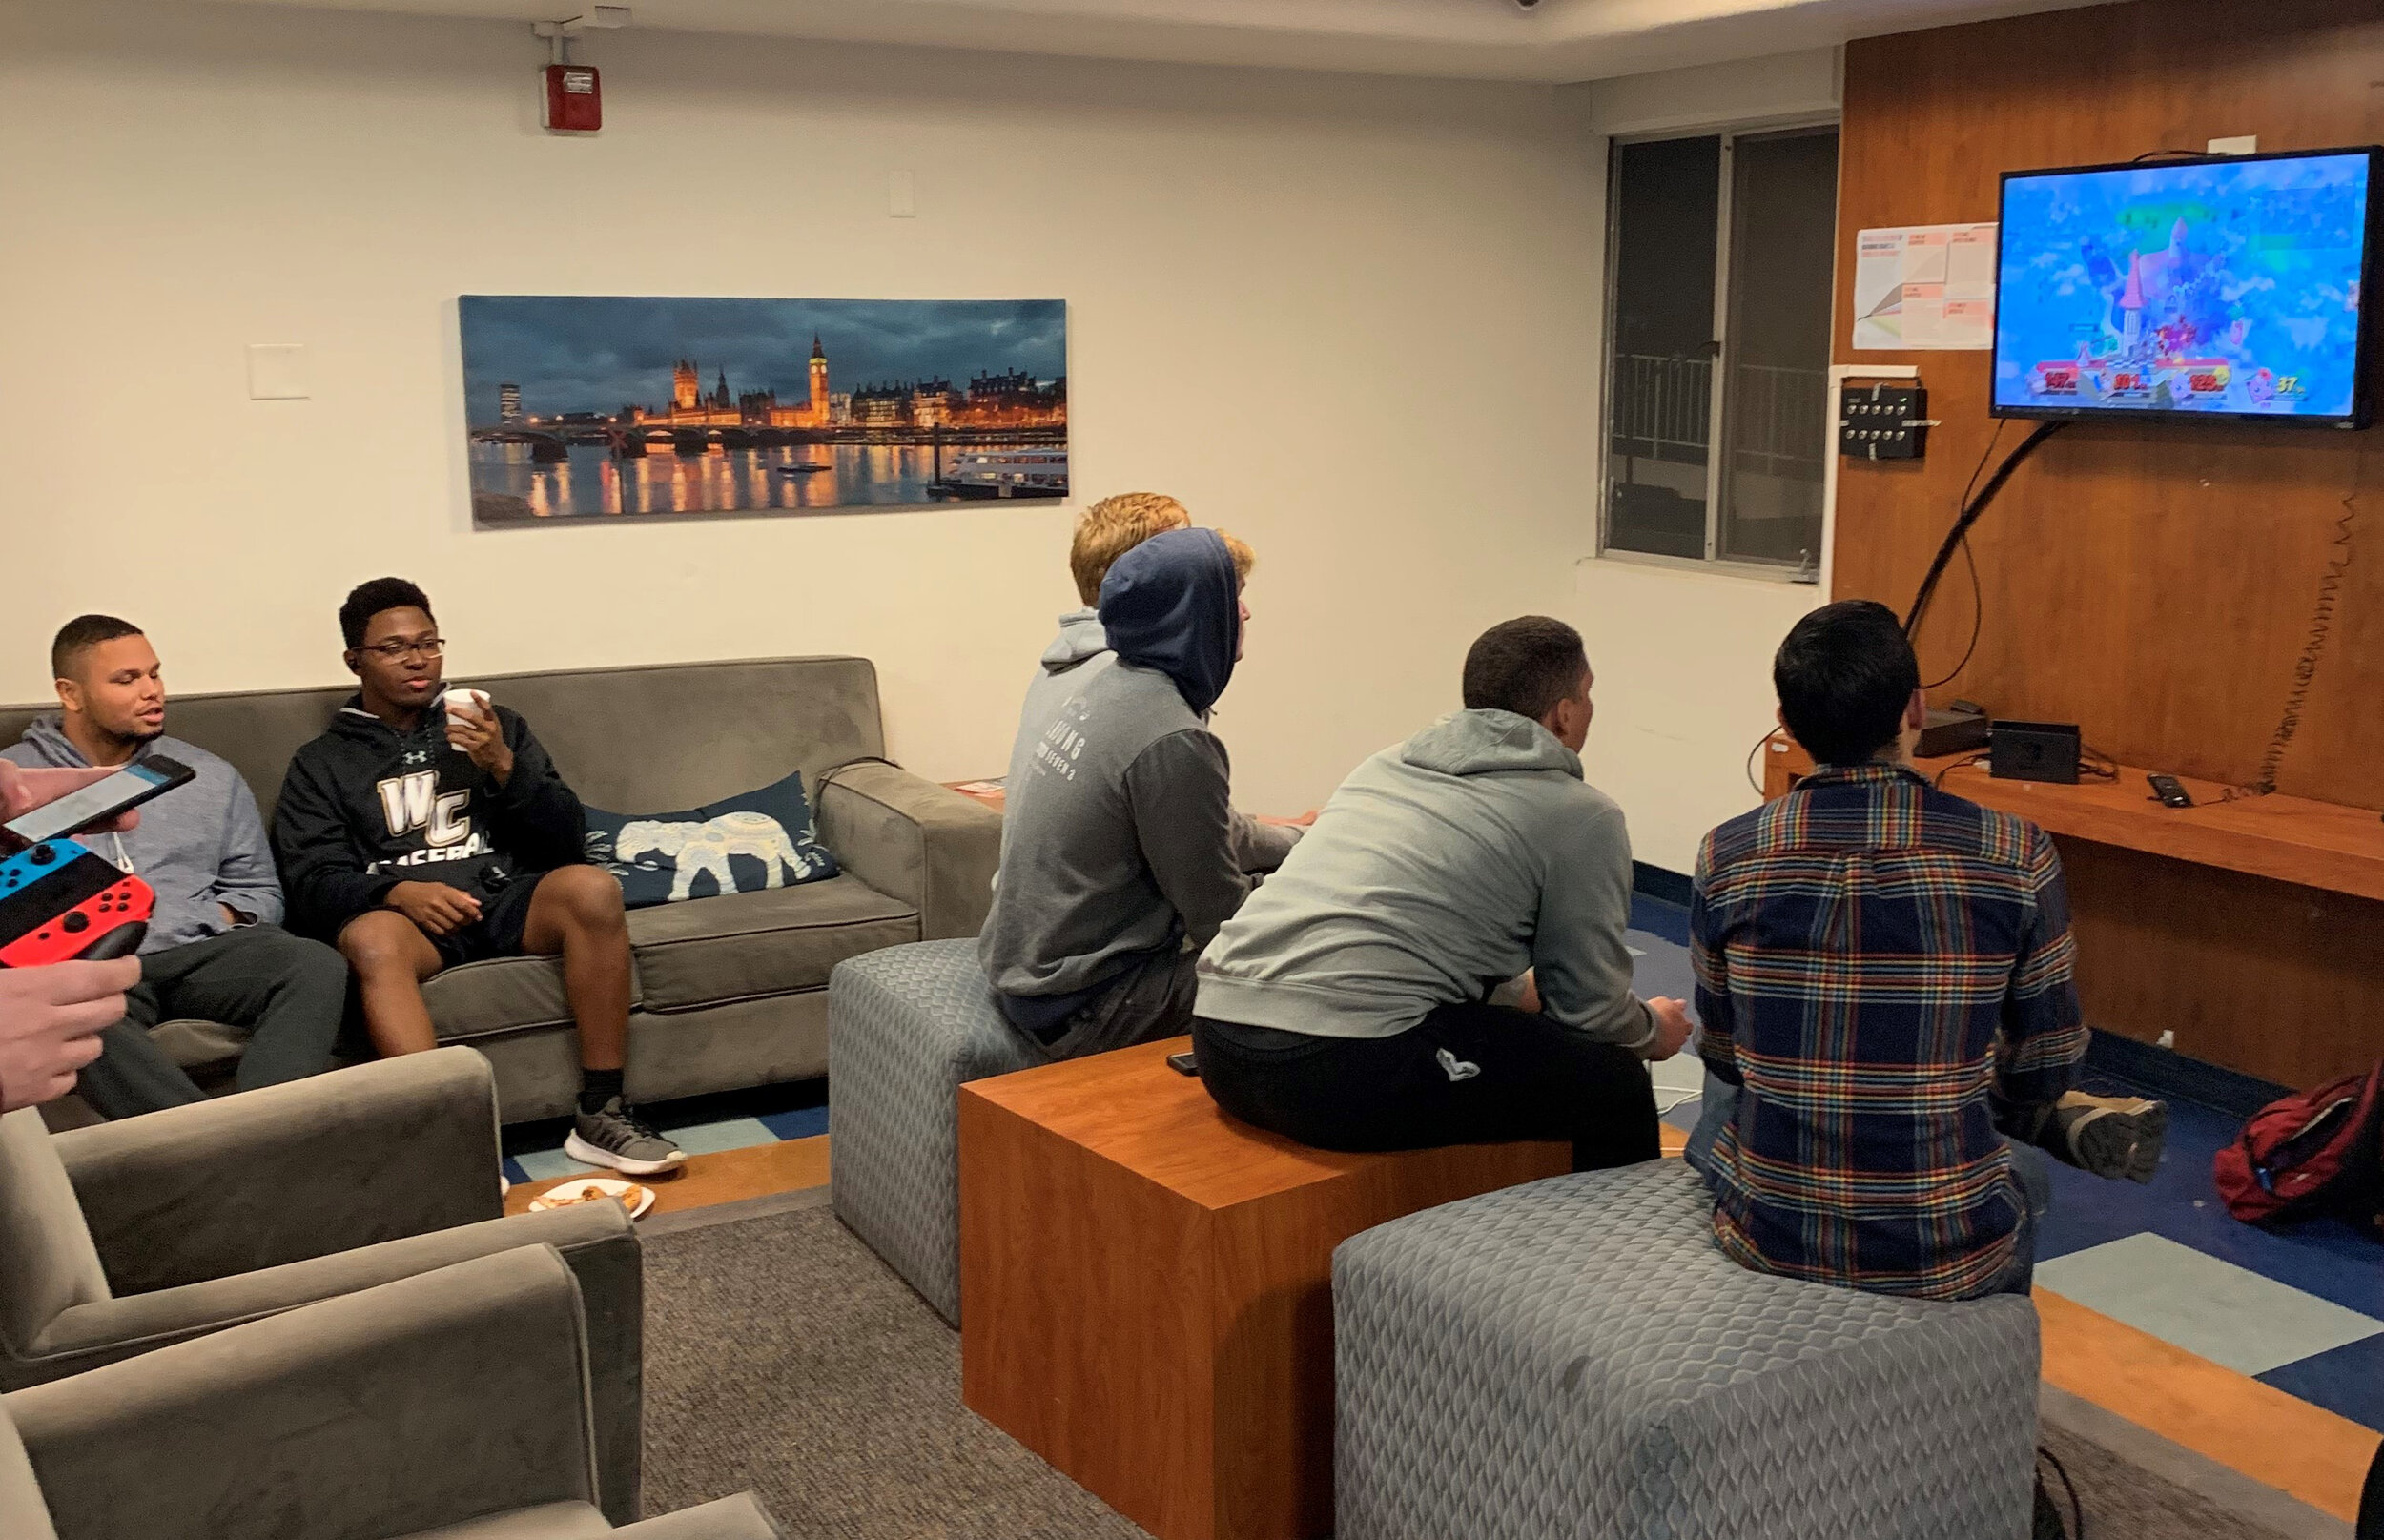 COURTESY OF JOSEPH MELENDEZ   The stresses of college can sometimes be overwhelming, but game nights allow students time to relax and unwind.